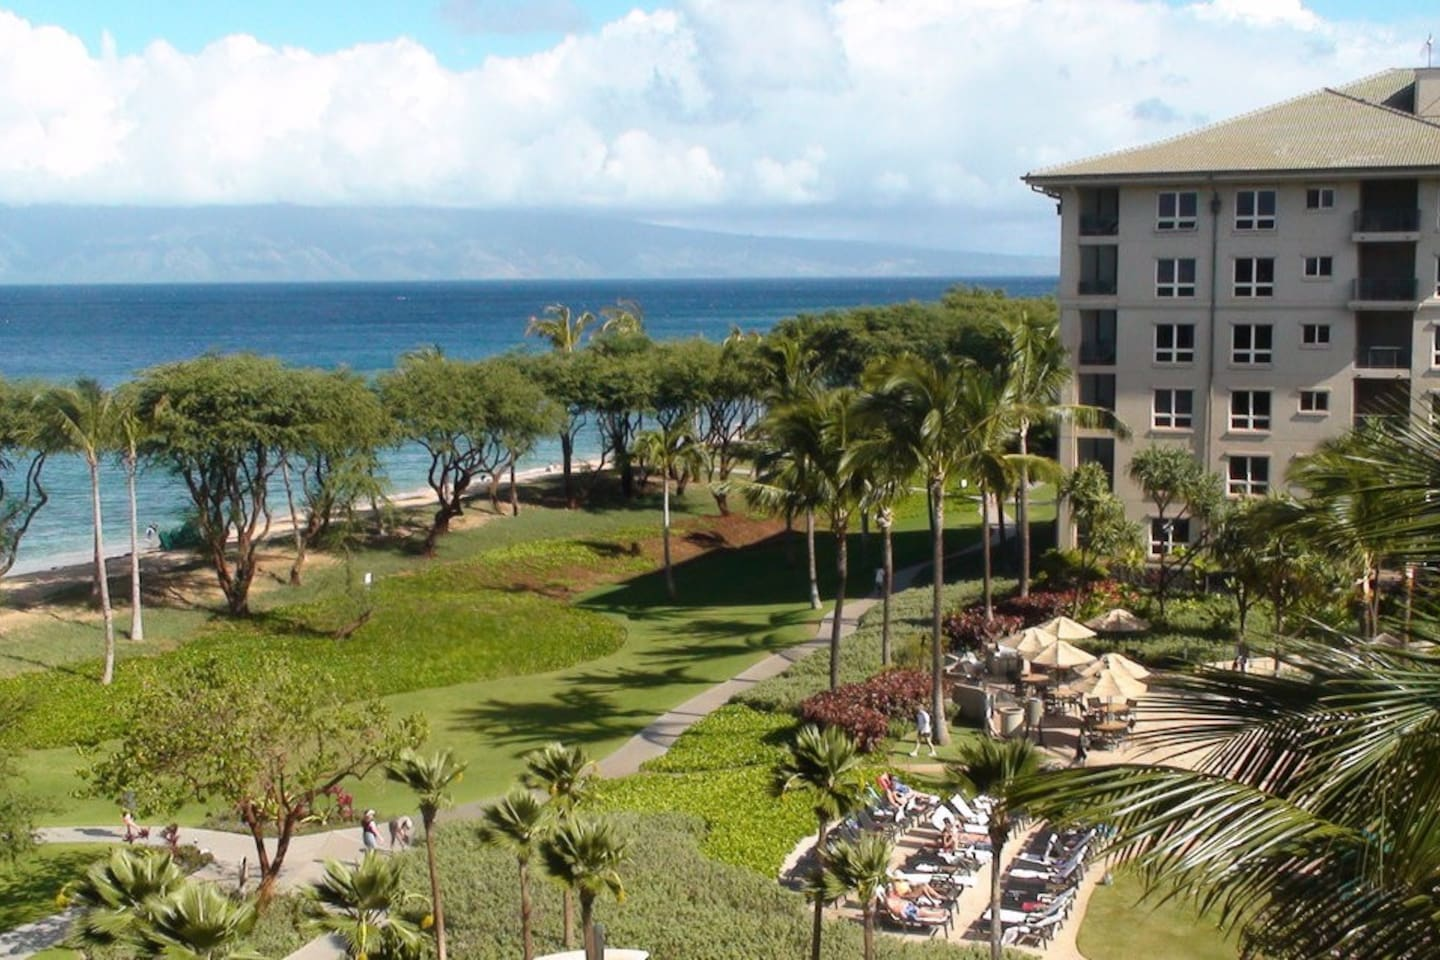 View of Molokai Island from the resort